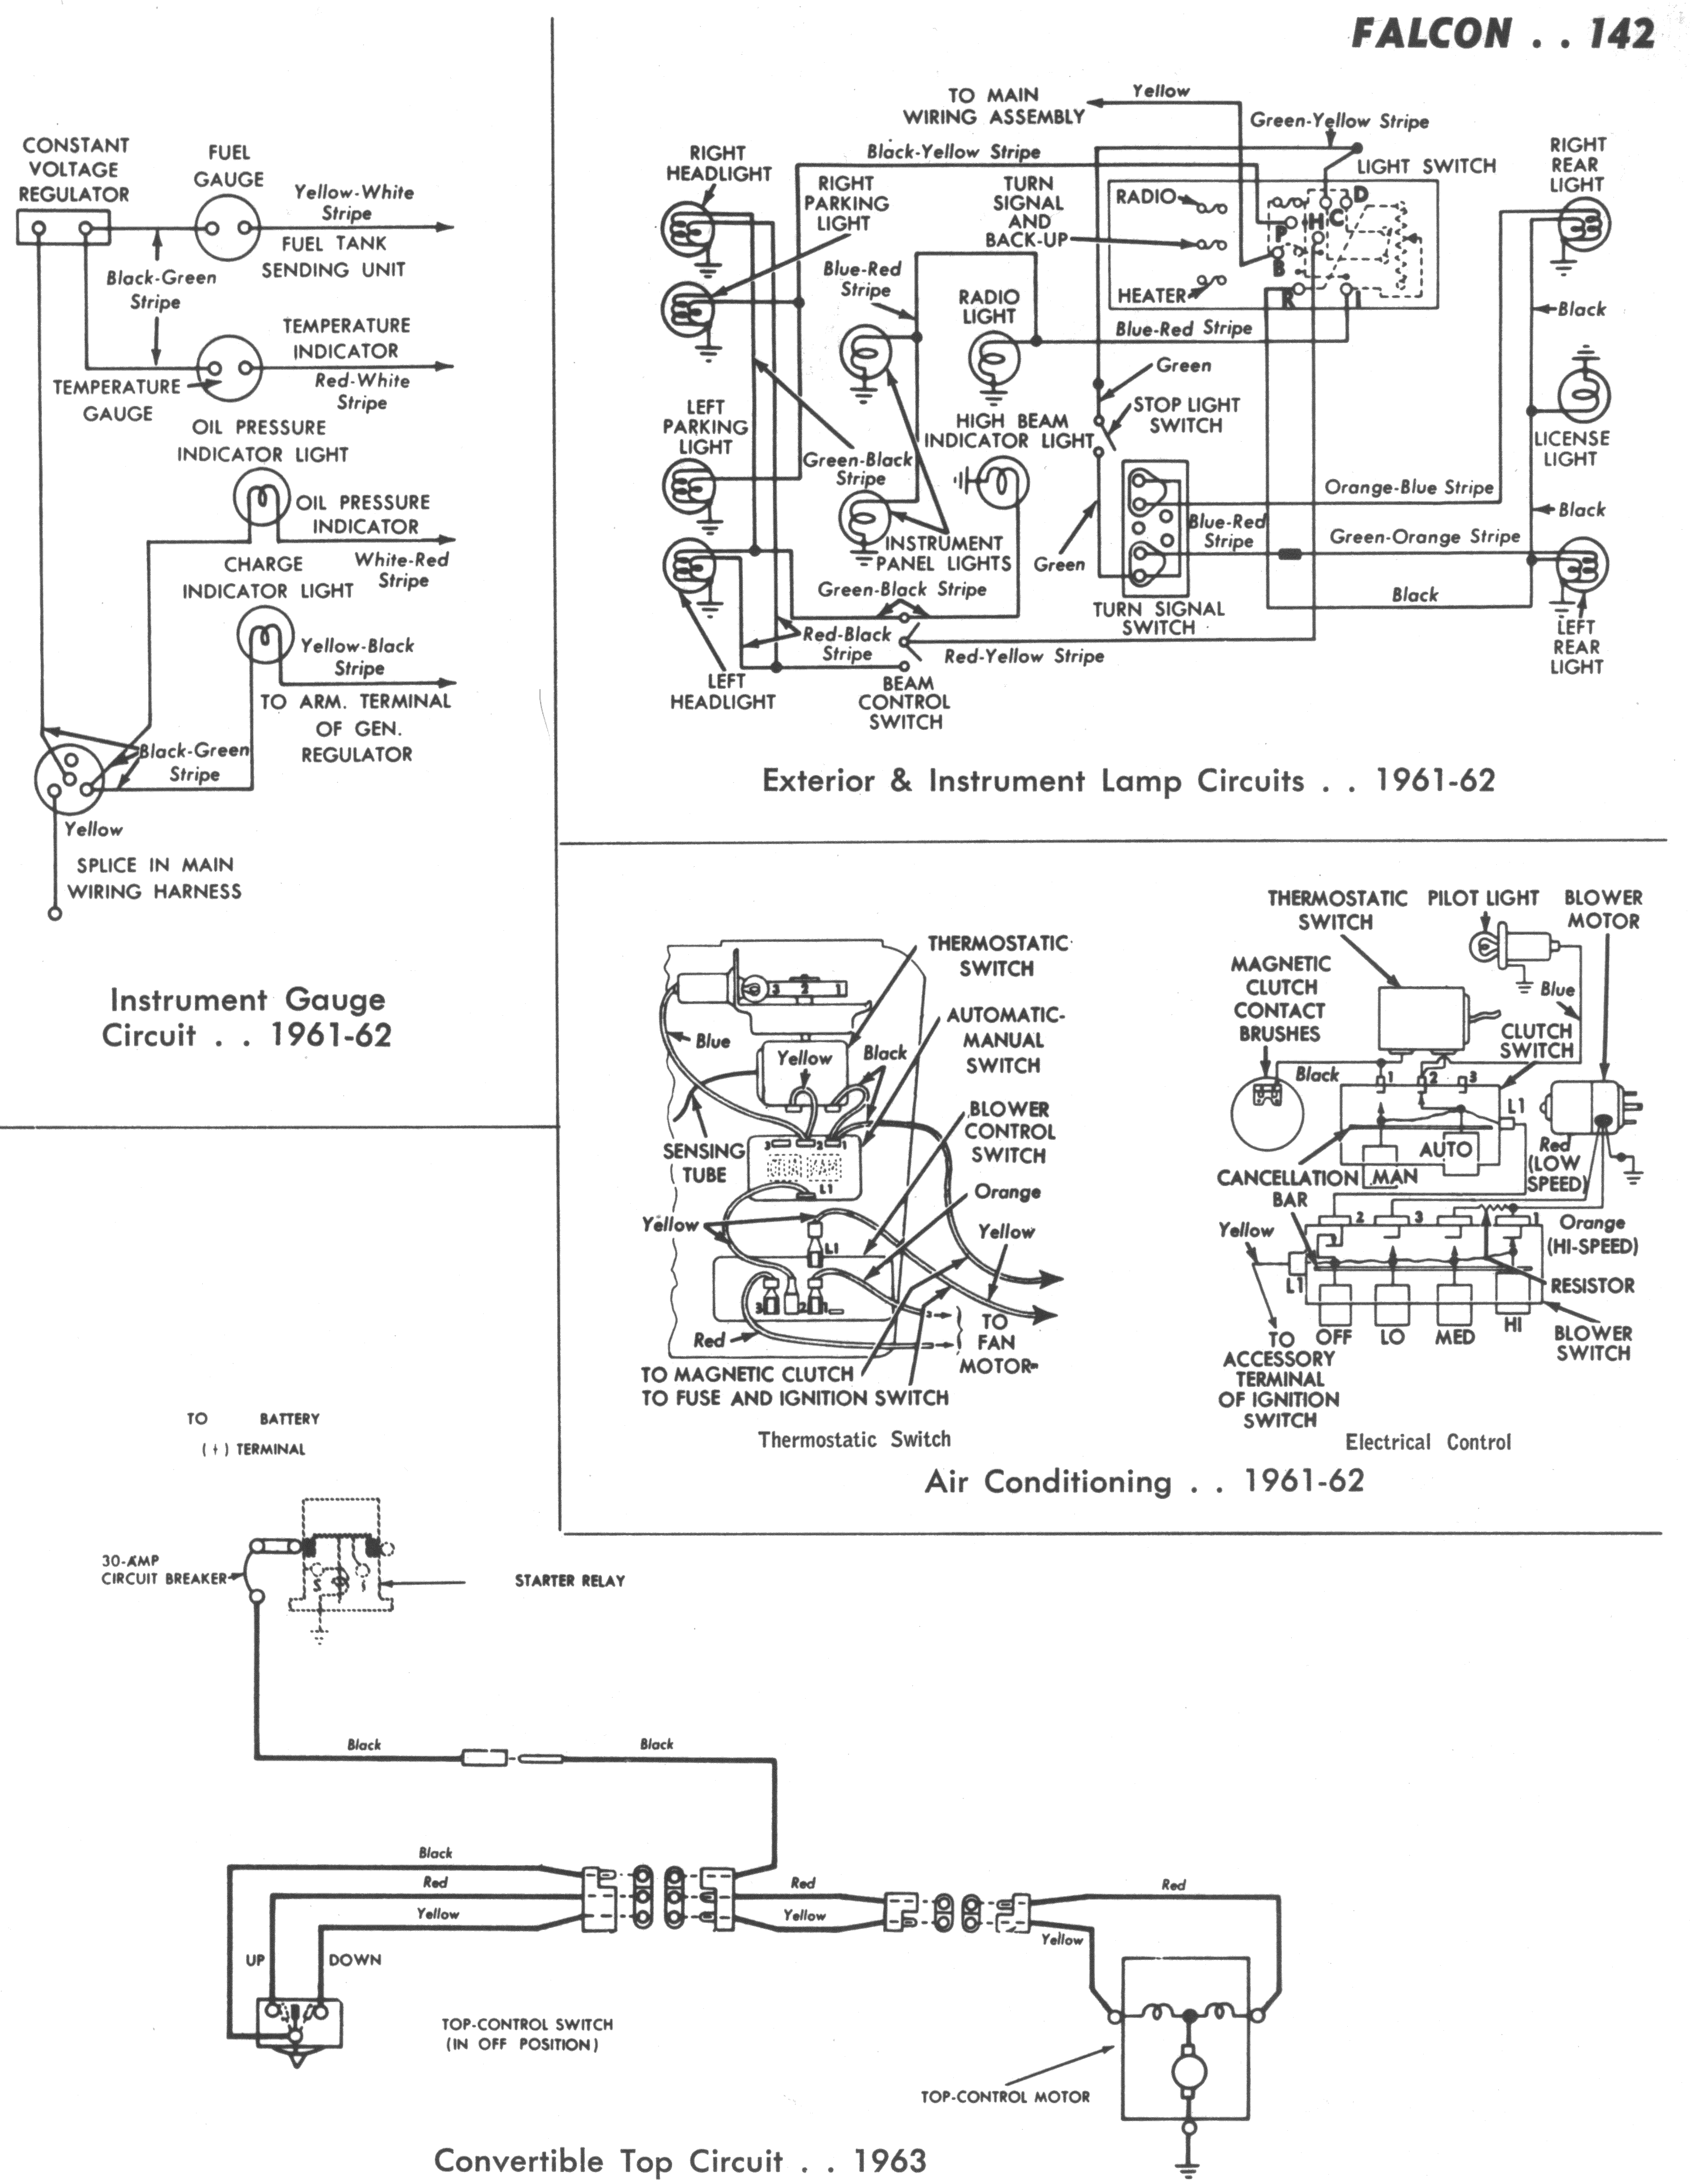 Falcon Guage E2 002 Wiring Diagram